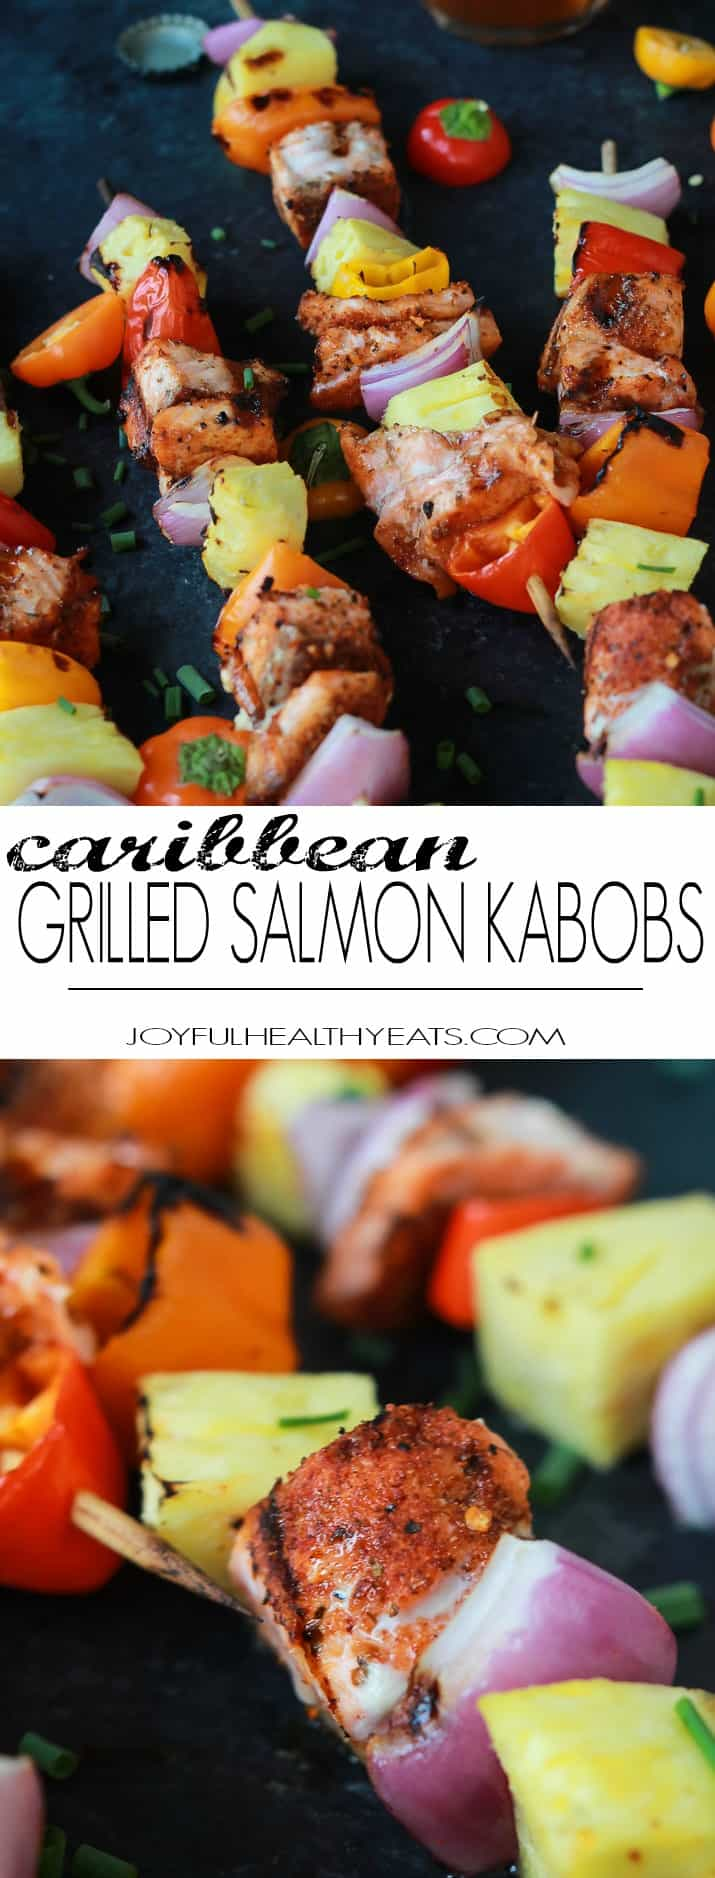 Caribbean Grilled Salmon Kabobs Will Take You Straight To The Islands With  The Cajun Spices,